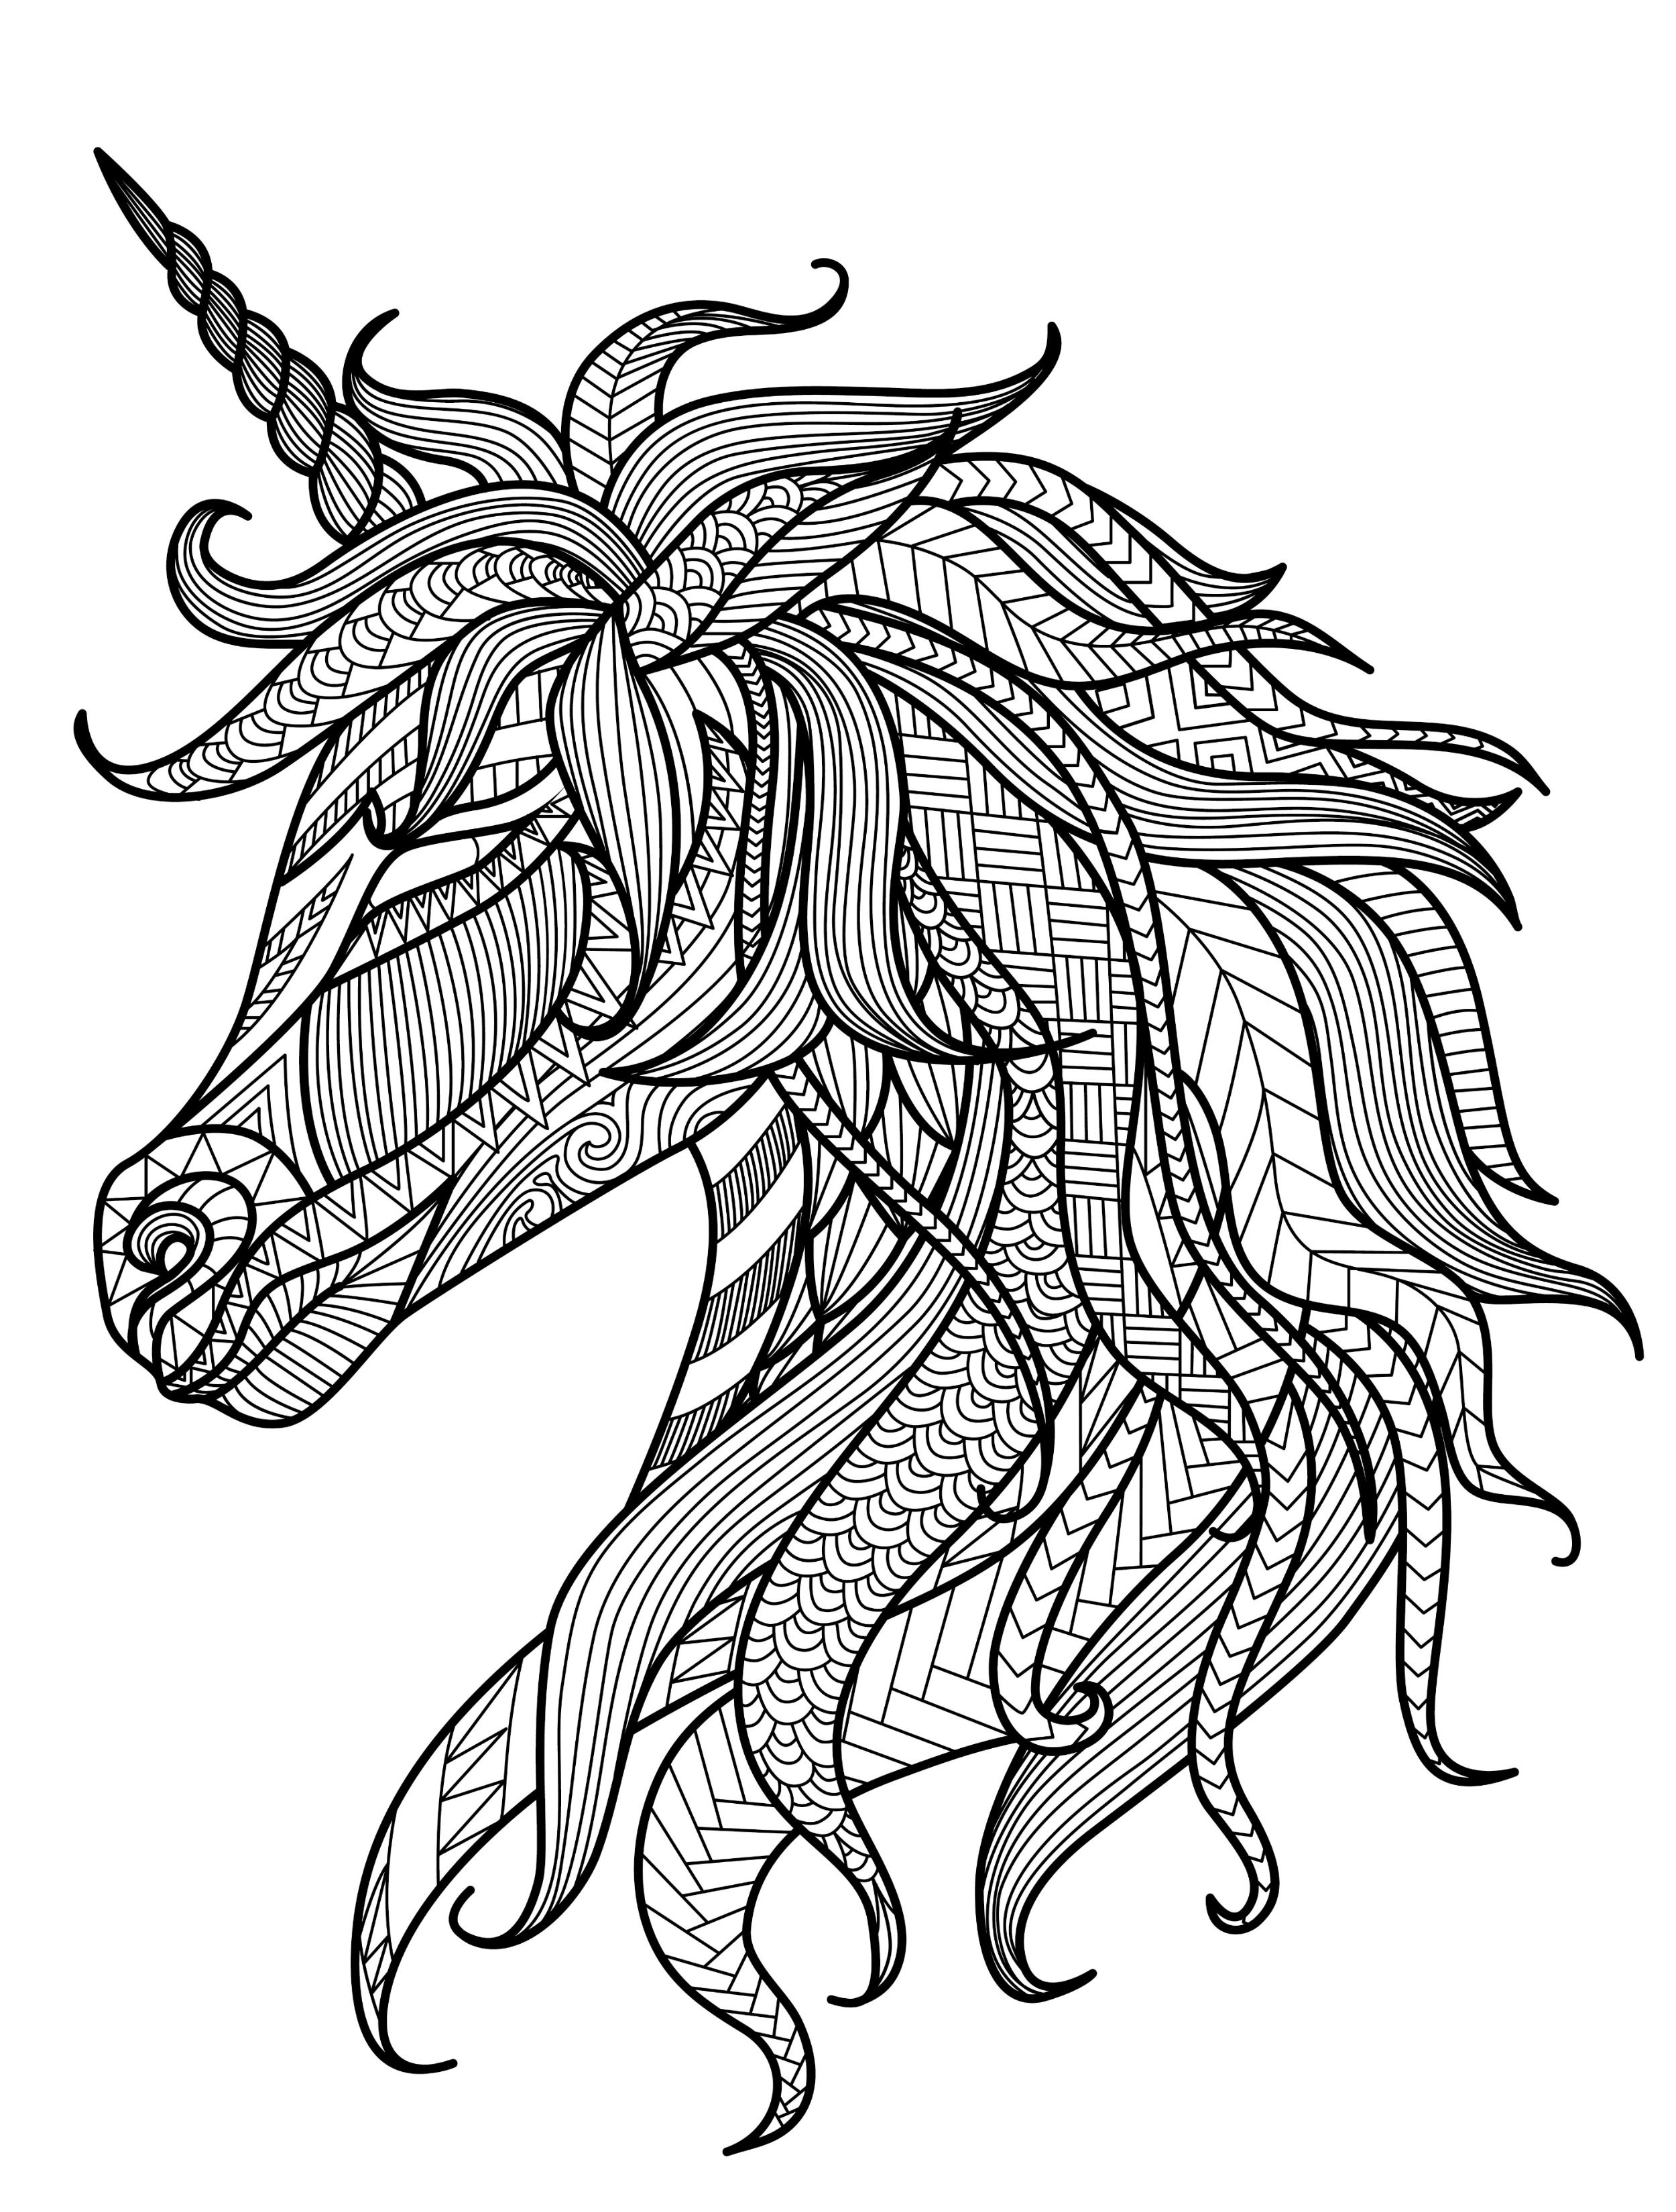 Free printable coloring pages unicorns - 20 Gorgeous Free Printable Adult Coloring Pages